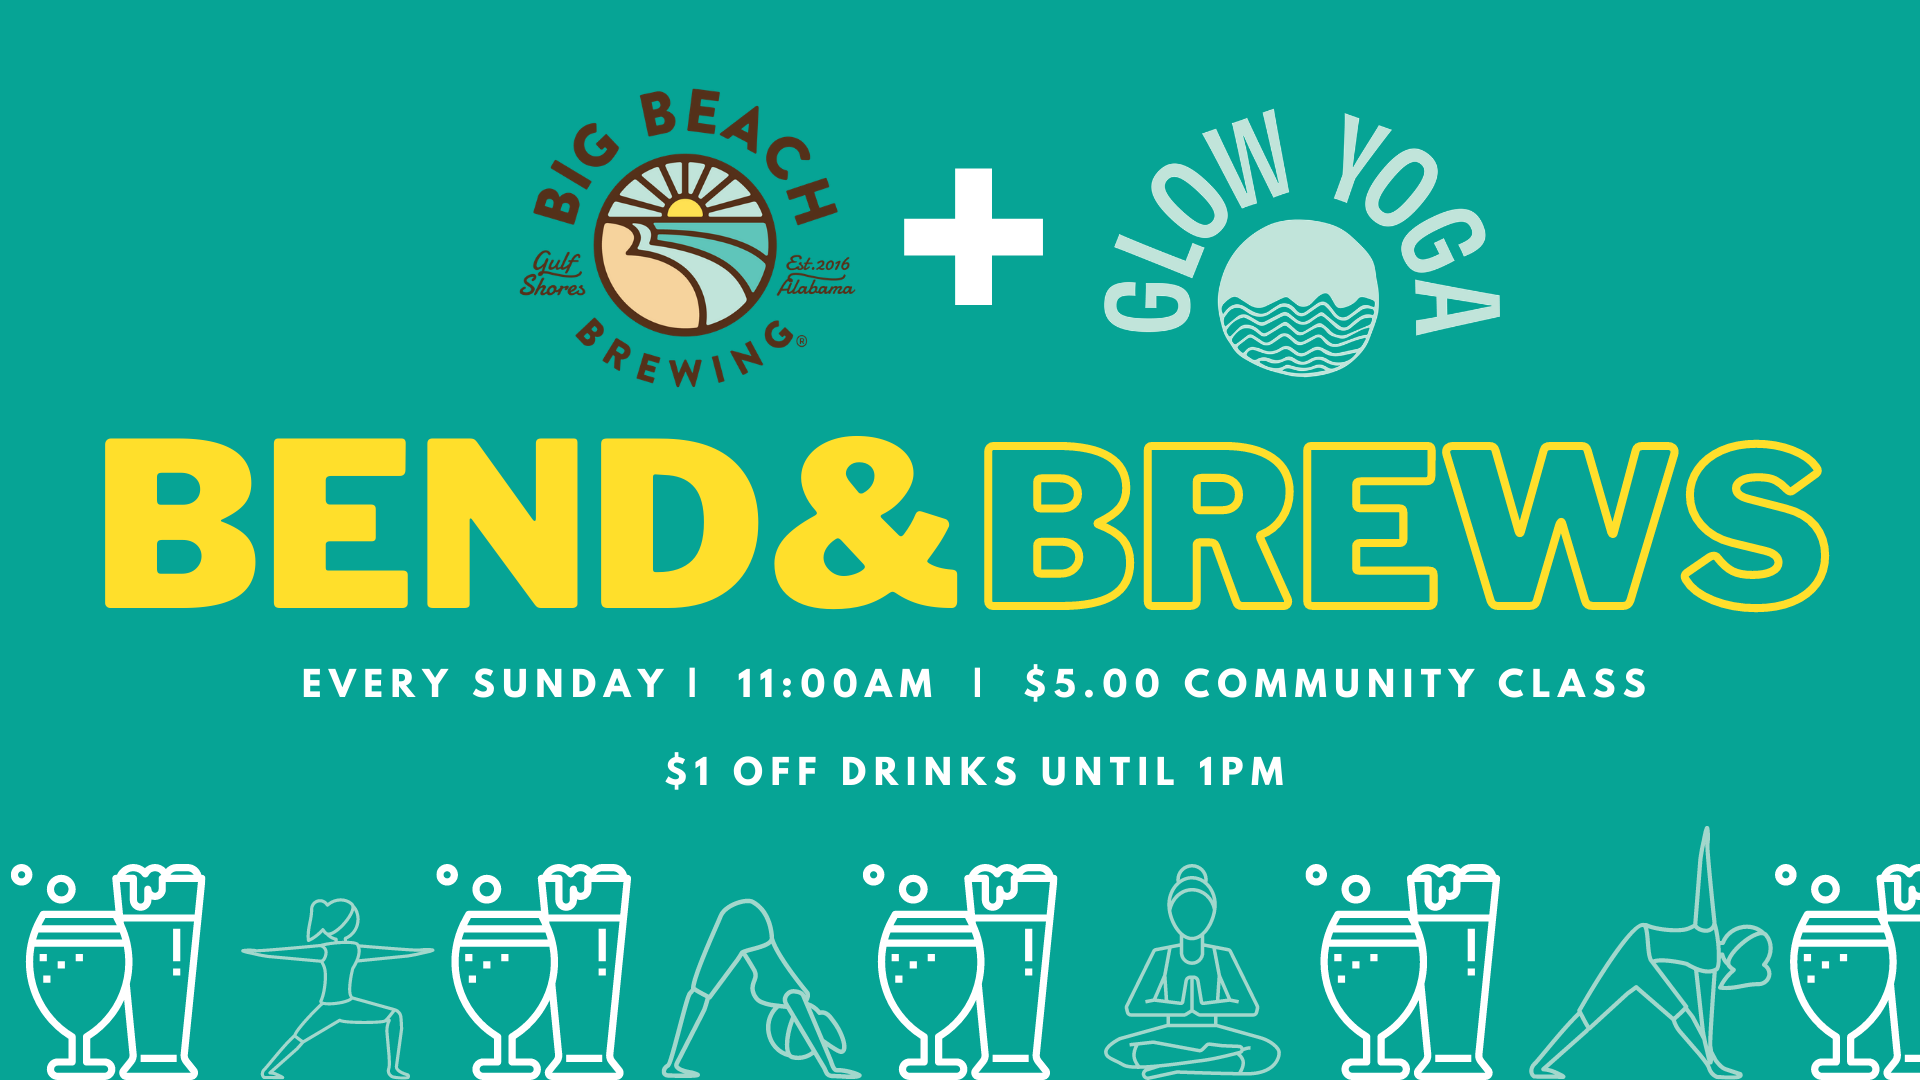 Bend & Brews - Fbook Event Cover (2)